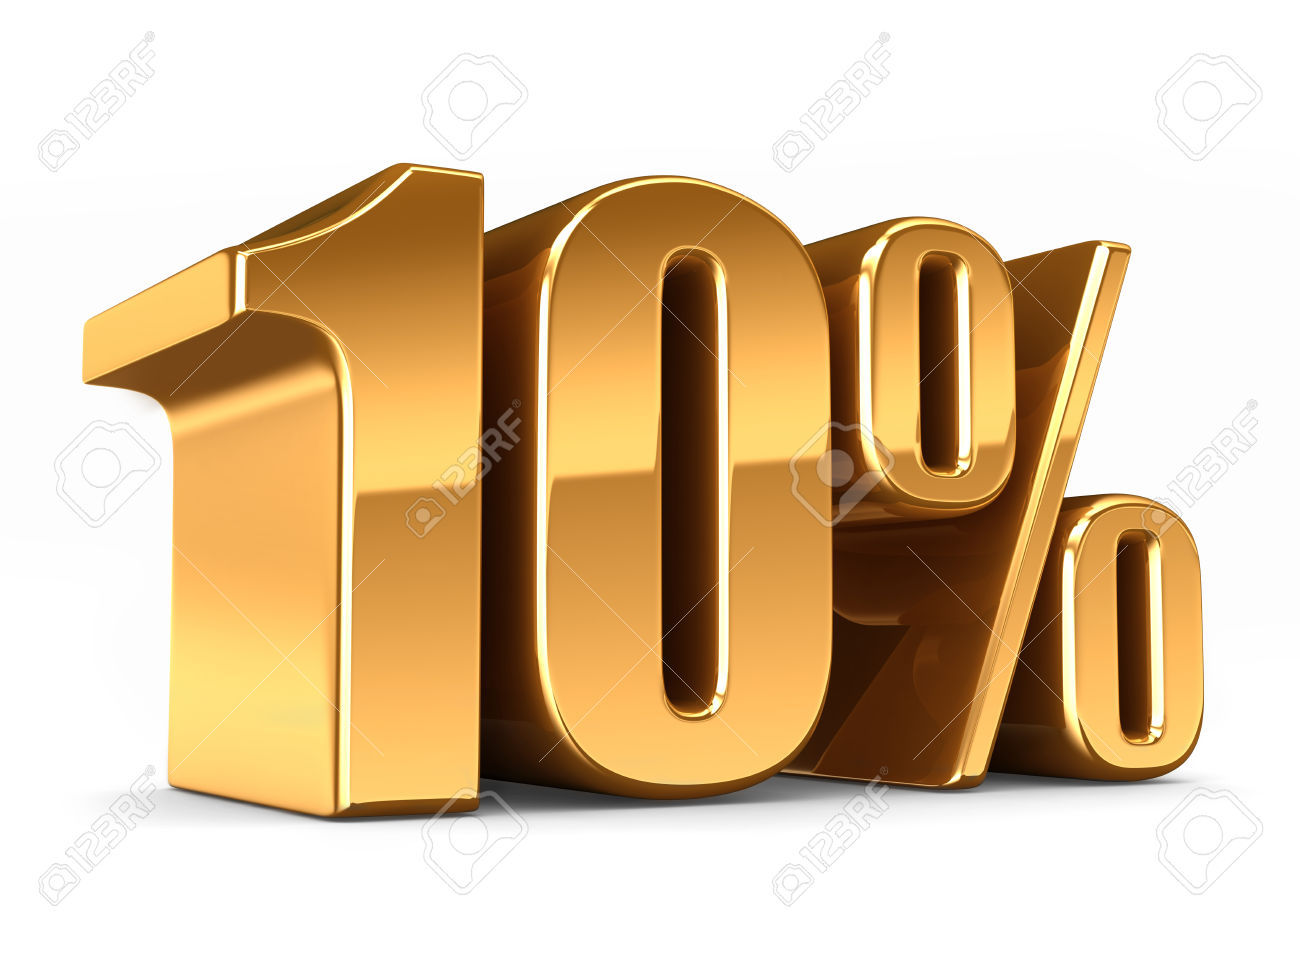 3d Render Of A Gold 10 Percent Stock Photo, Picture And Royalty.